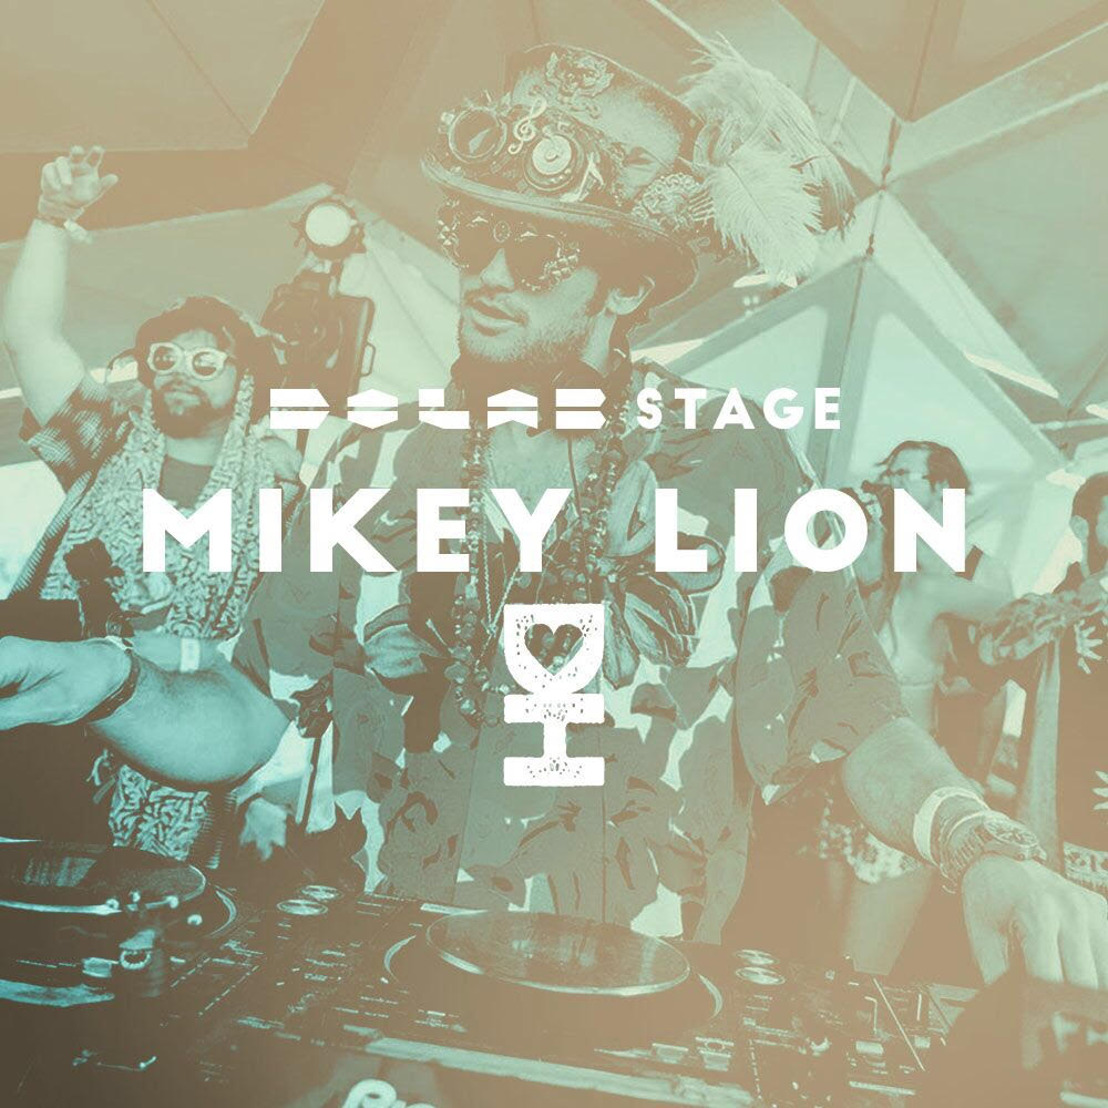 LISTEN: Mikey Lion's Do Lab at Coachella Set Recording